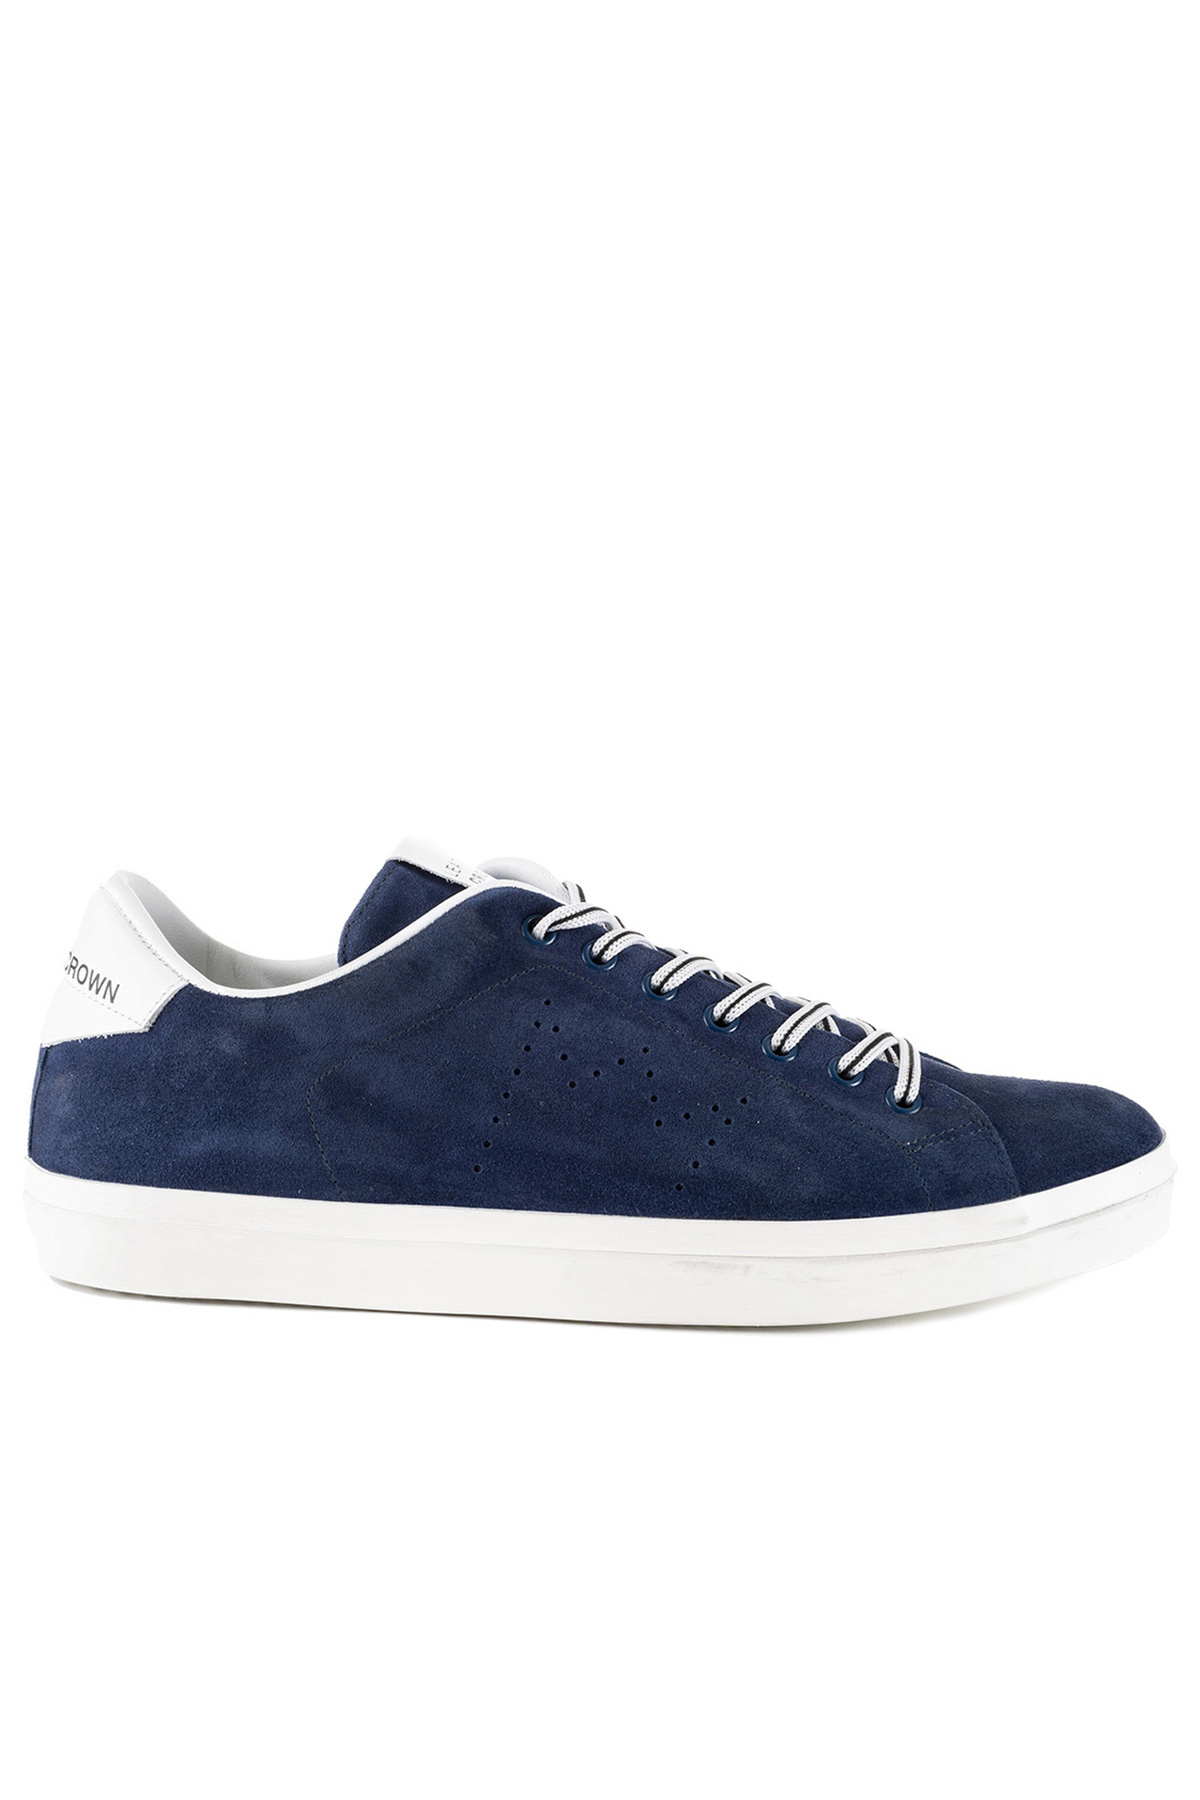 BLUE SNEAKERS LC06 IN SUEDE LEATHER CROWN | Sneakers | MLC06325